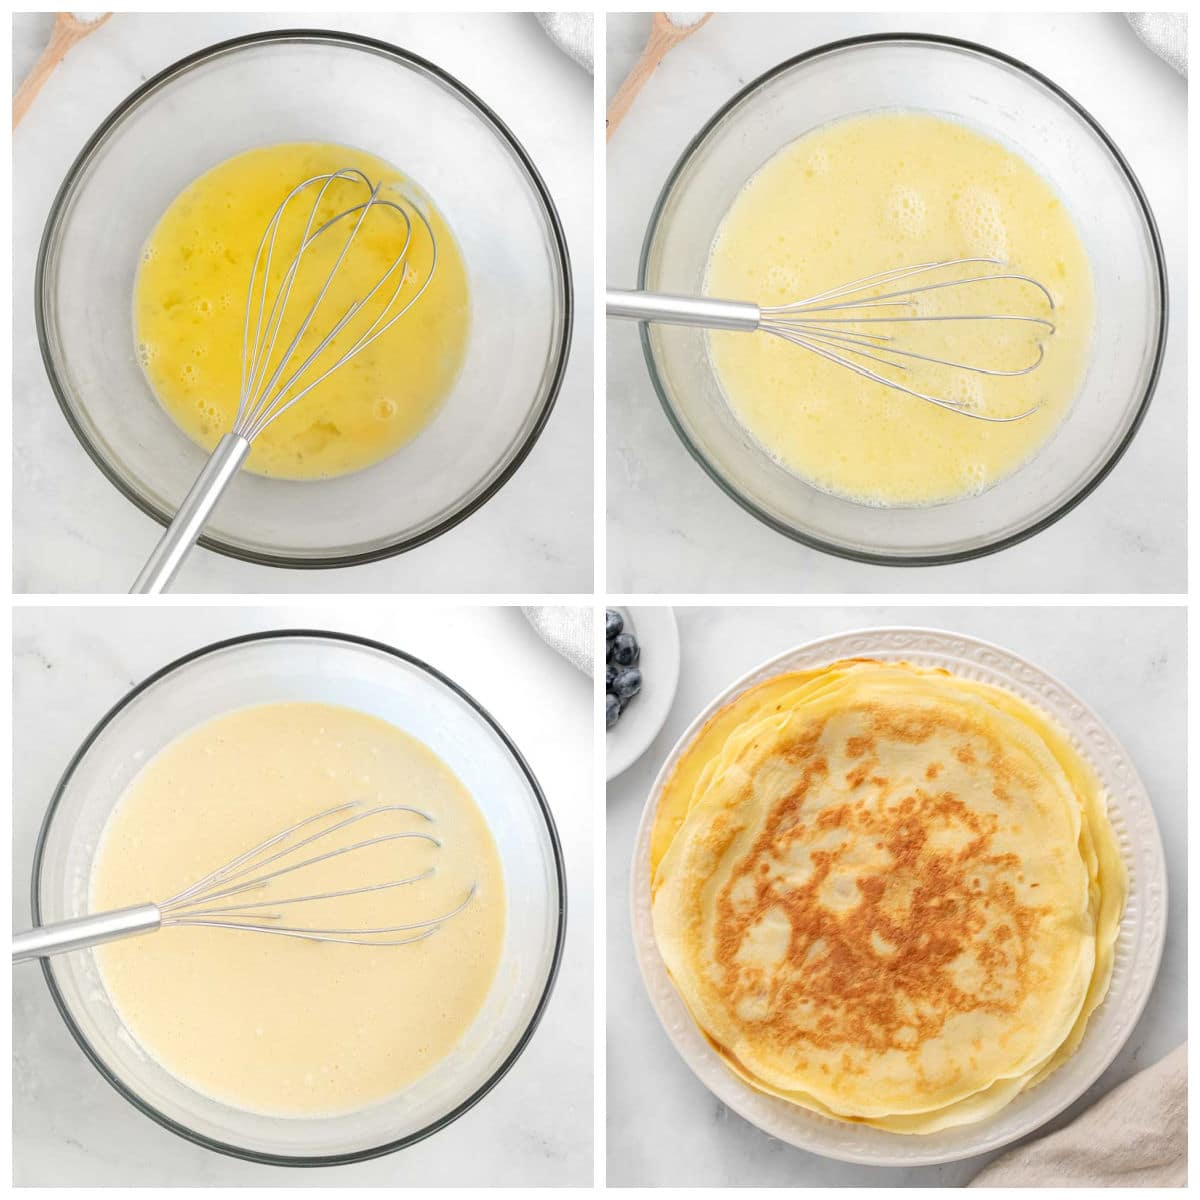 crepe batter being mixed in a glass bowl